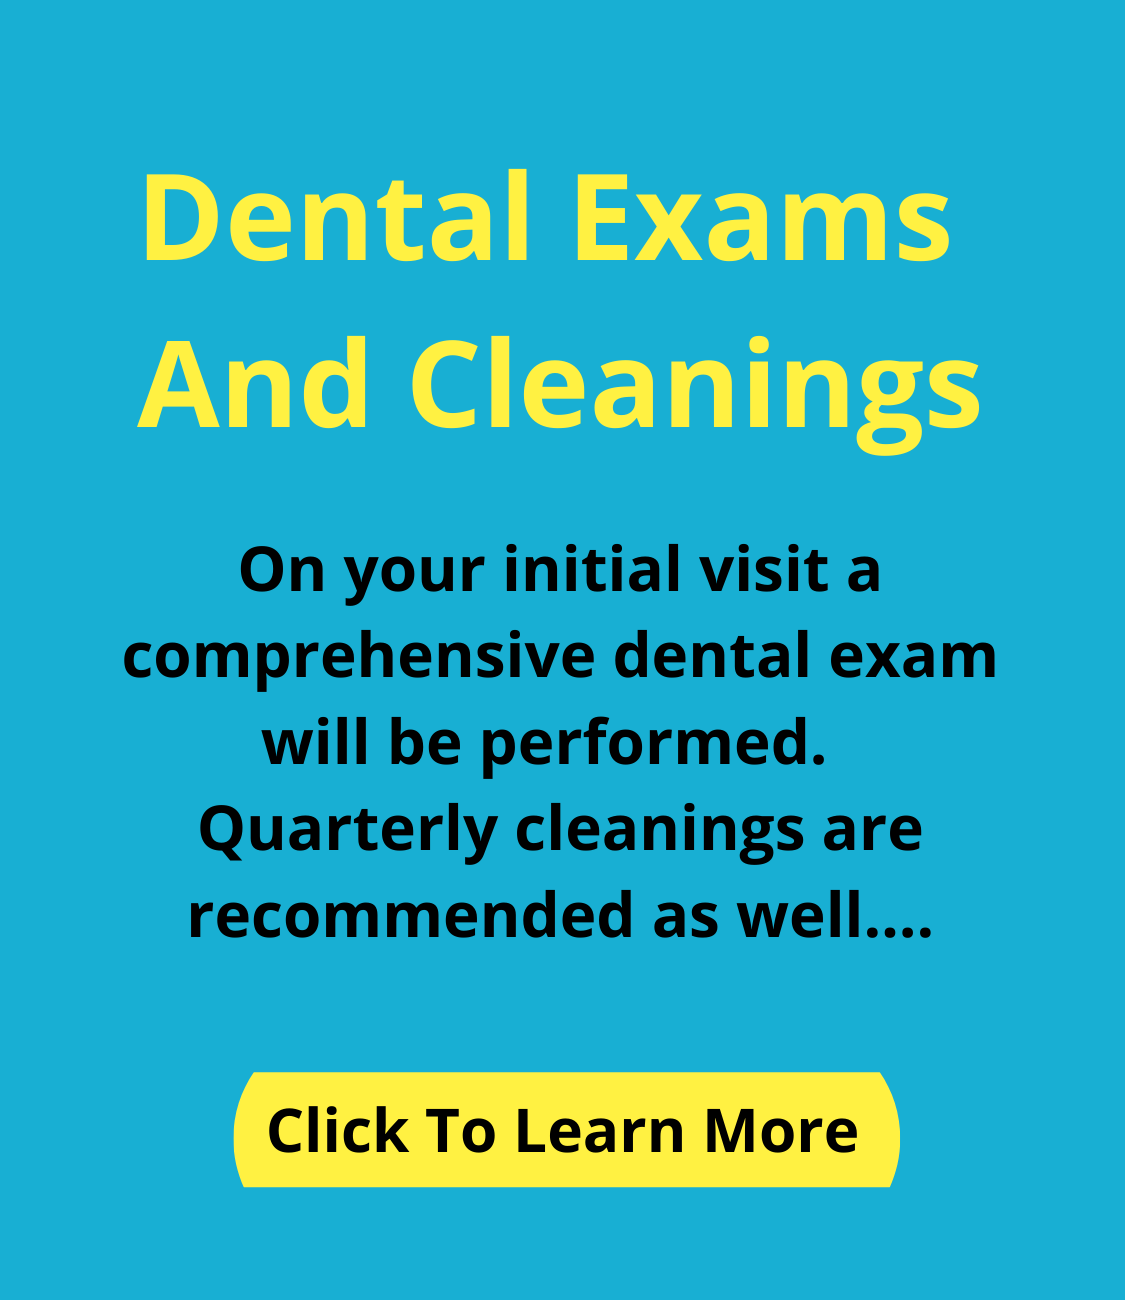 Dental Exams And Cleanings